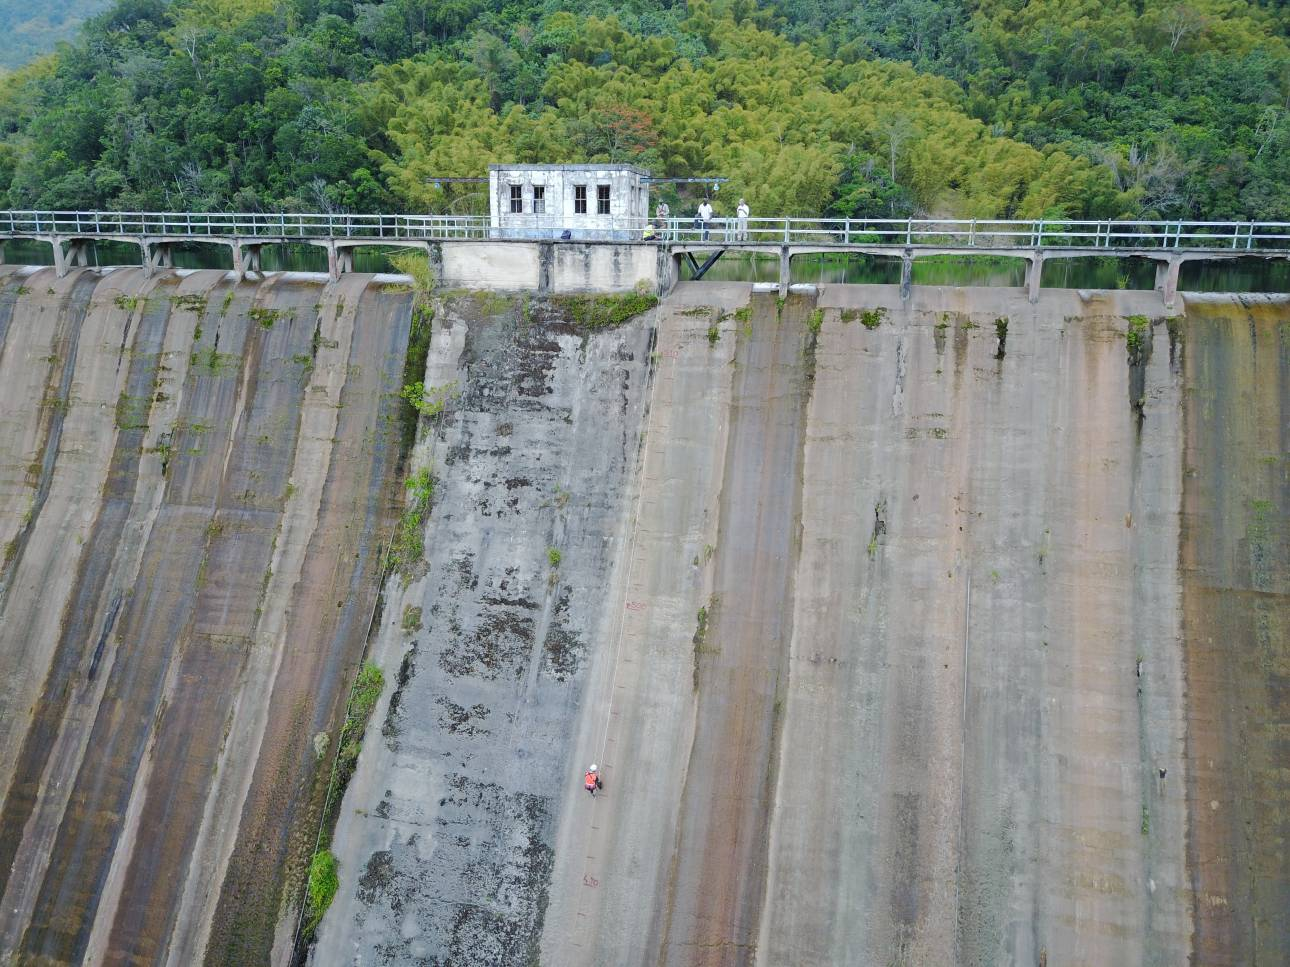 SP's main dam rehabilitation projects